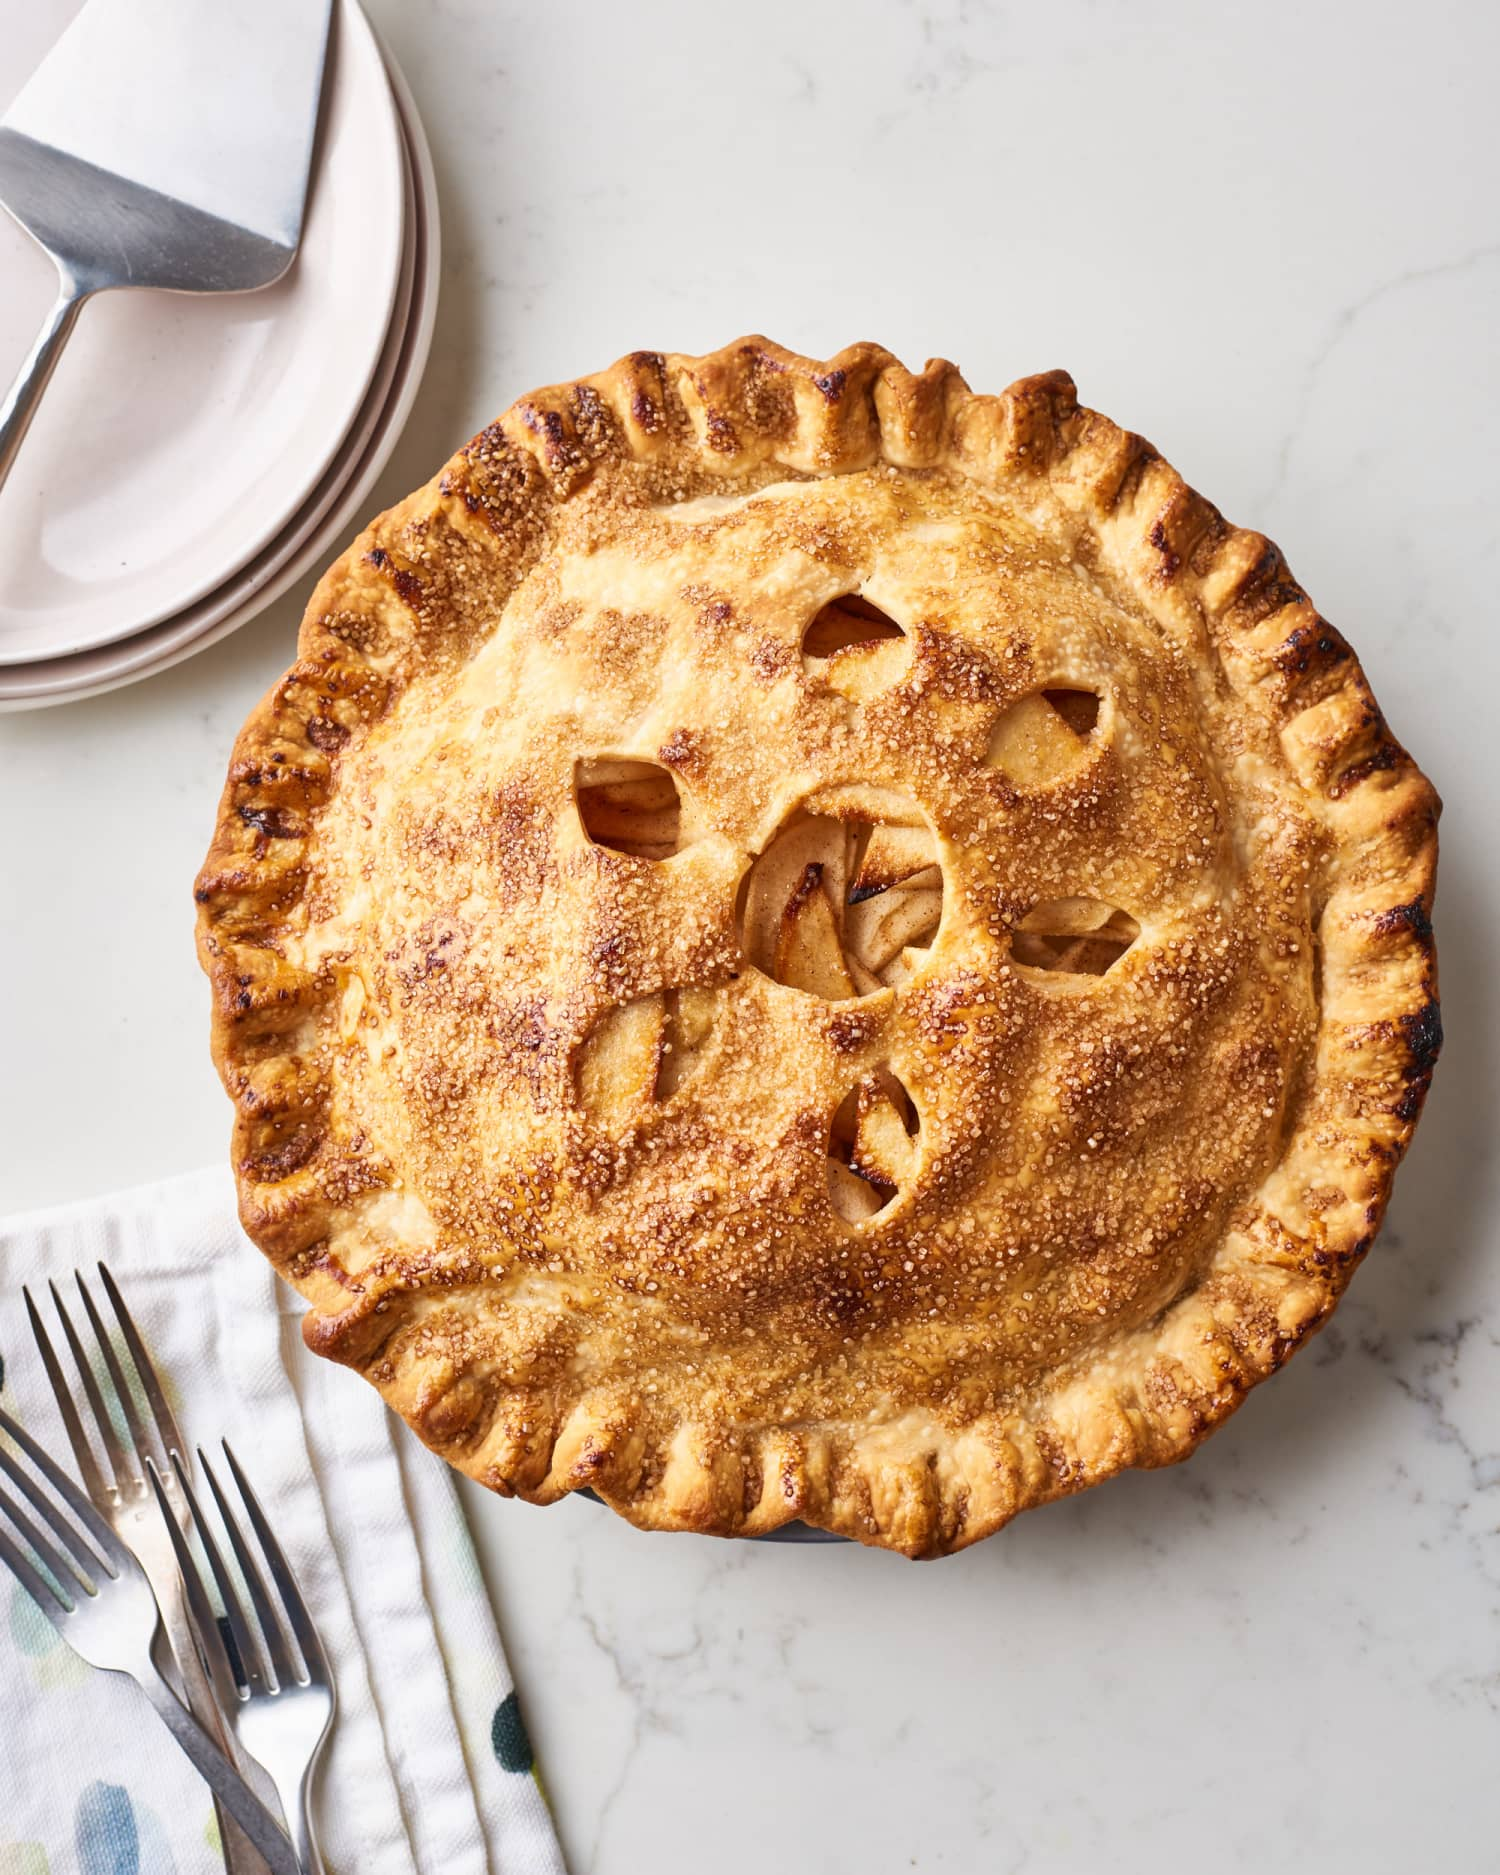 4 Tips for Making a *Much* Better Apple Pie